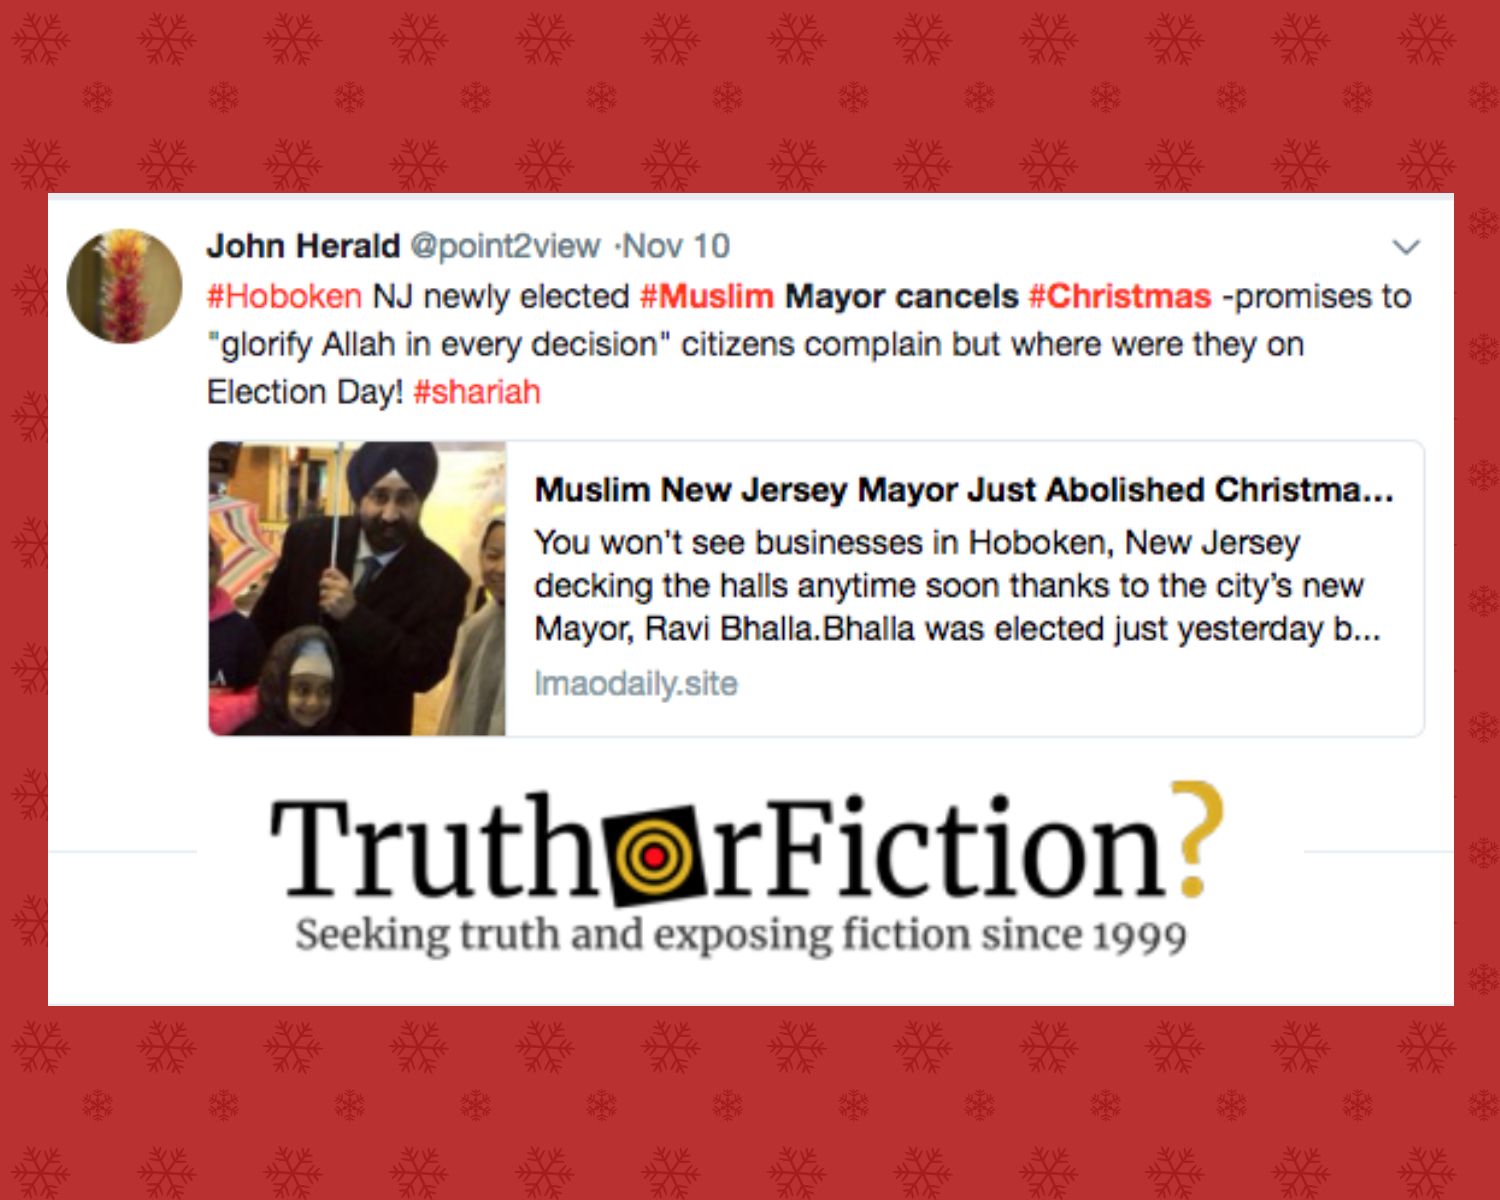 'Muslim New Jersey Mayor' Abolished Christmas to Respect Other Religions?